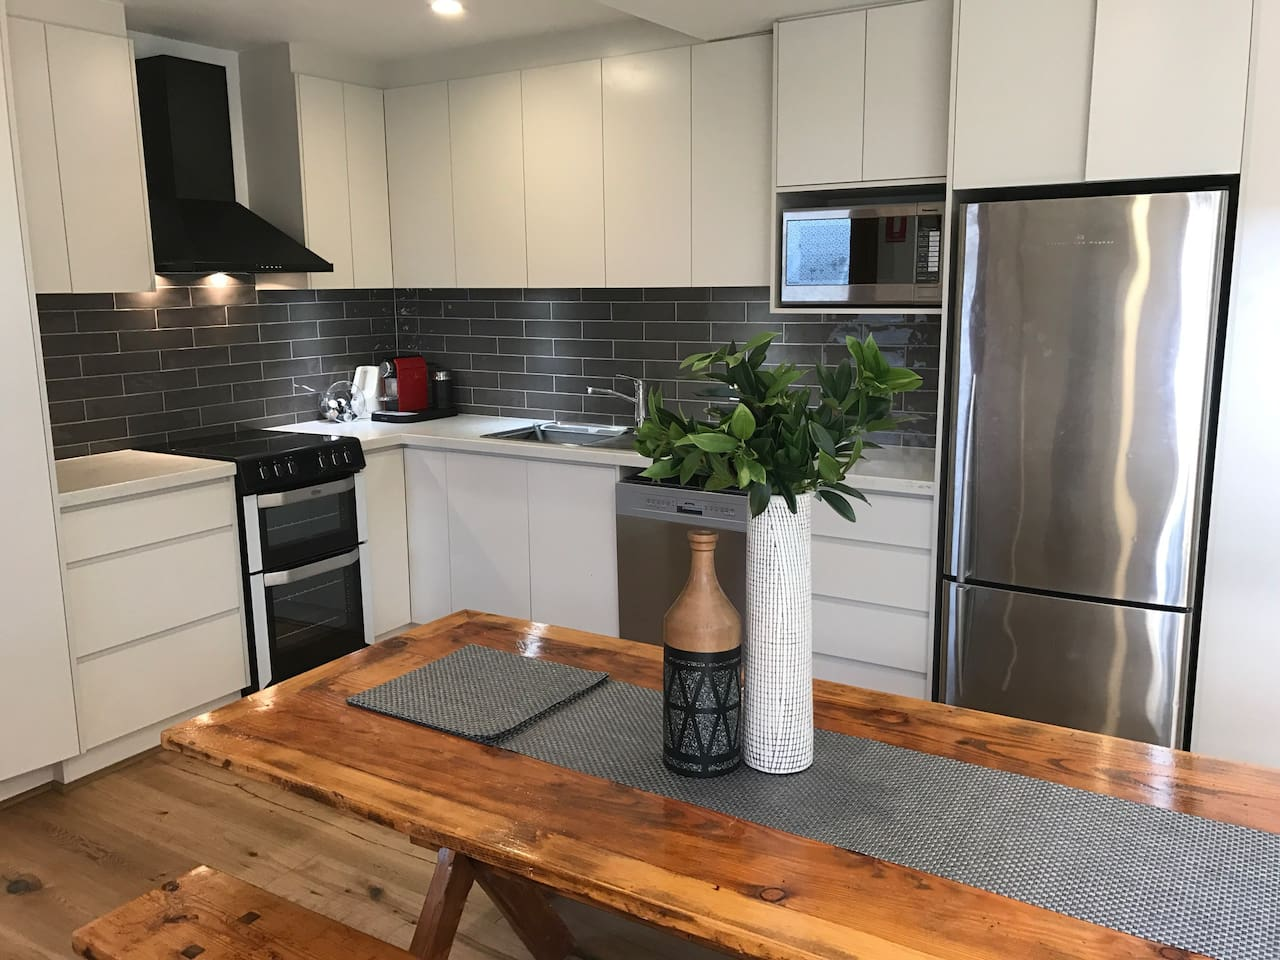 The newly renovated kitchen is so shiny and new! We love the 40mm caesarstone benchtop, oodles of storage and the feeling of luxury.